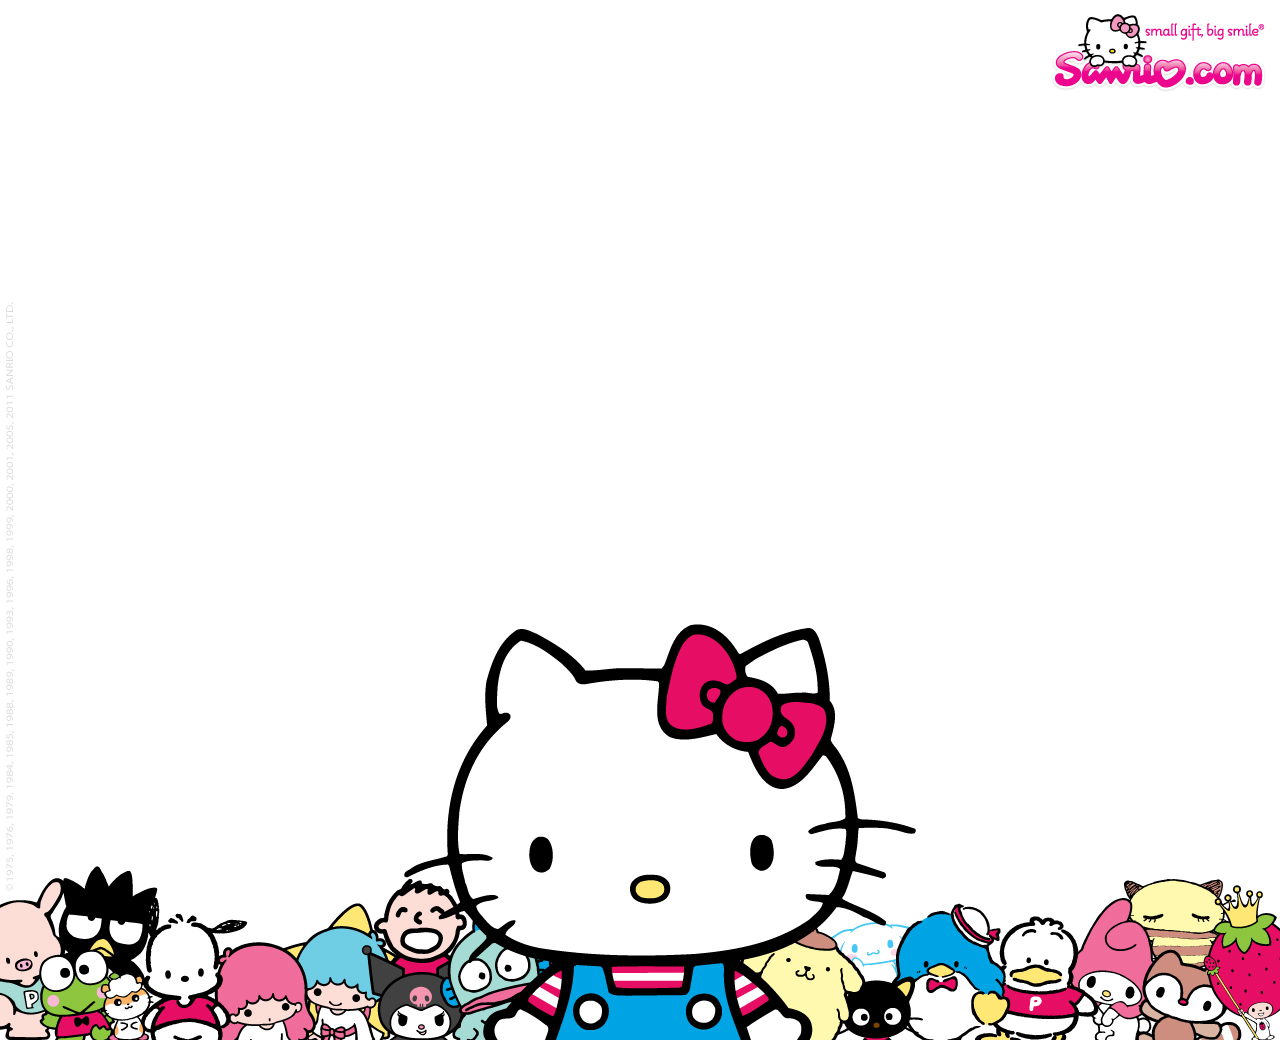 New-Hello-kitty-Wallpapers-from-Sanrio-website1